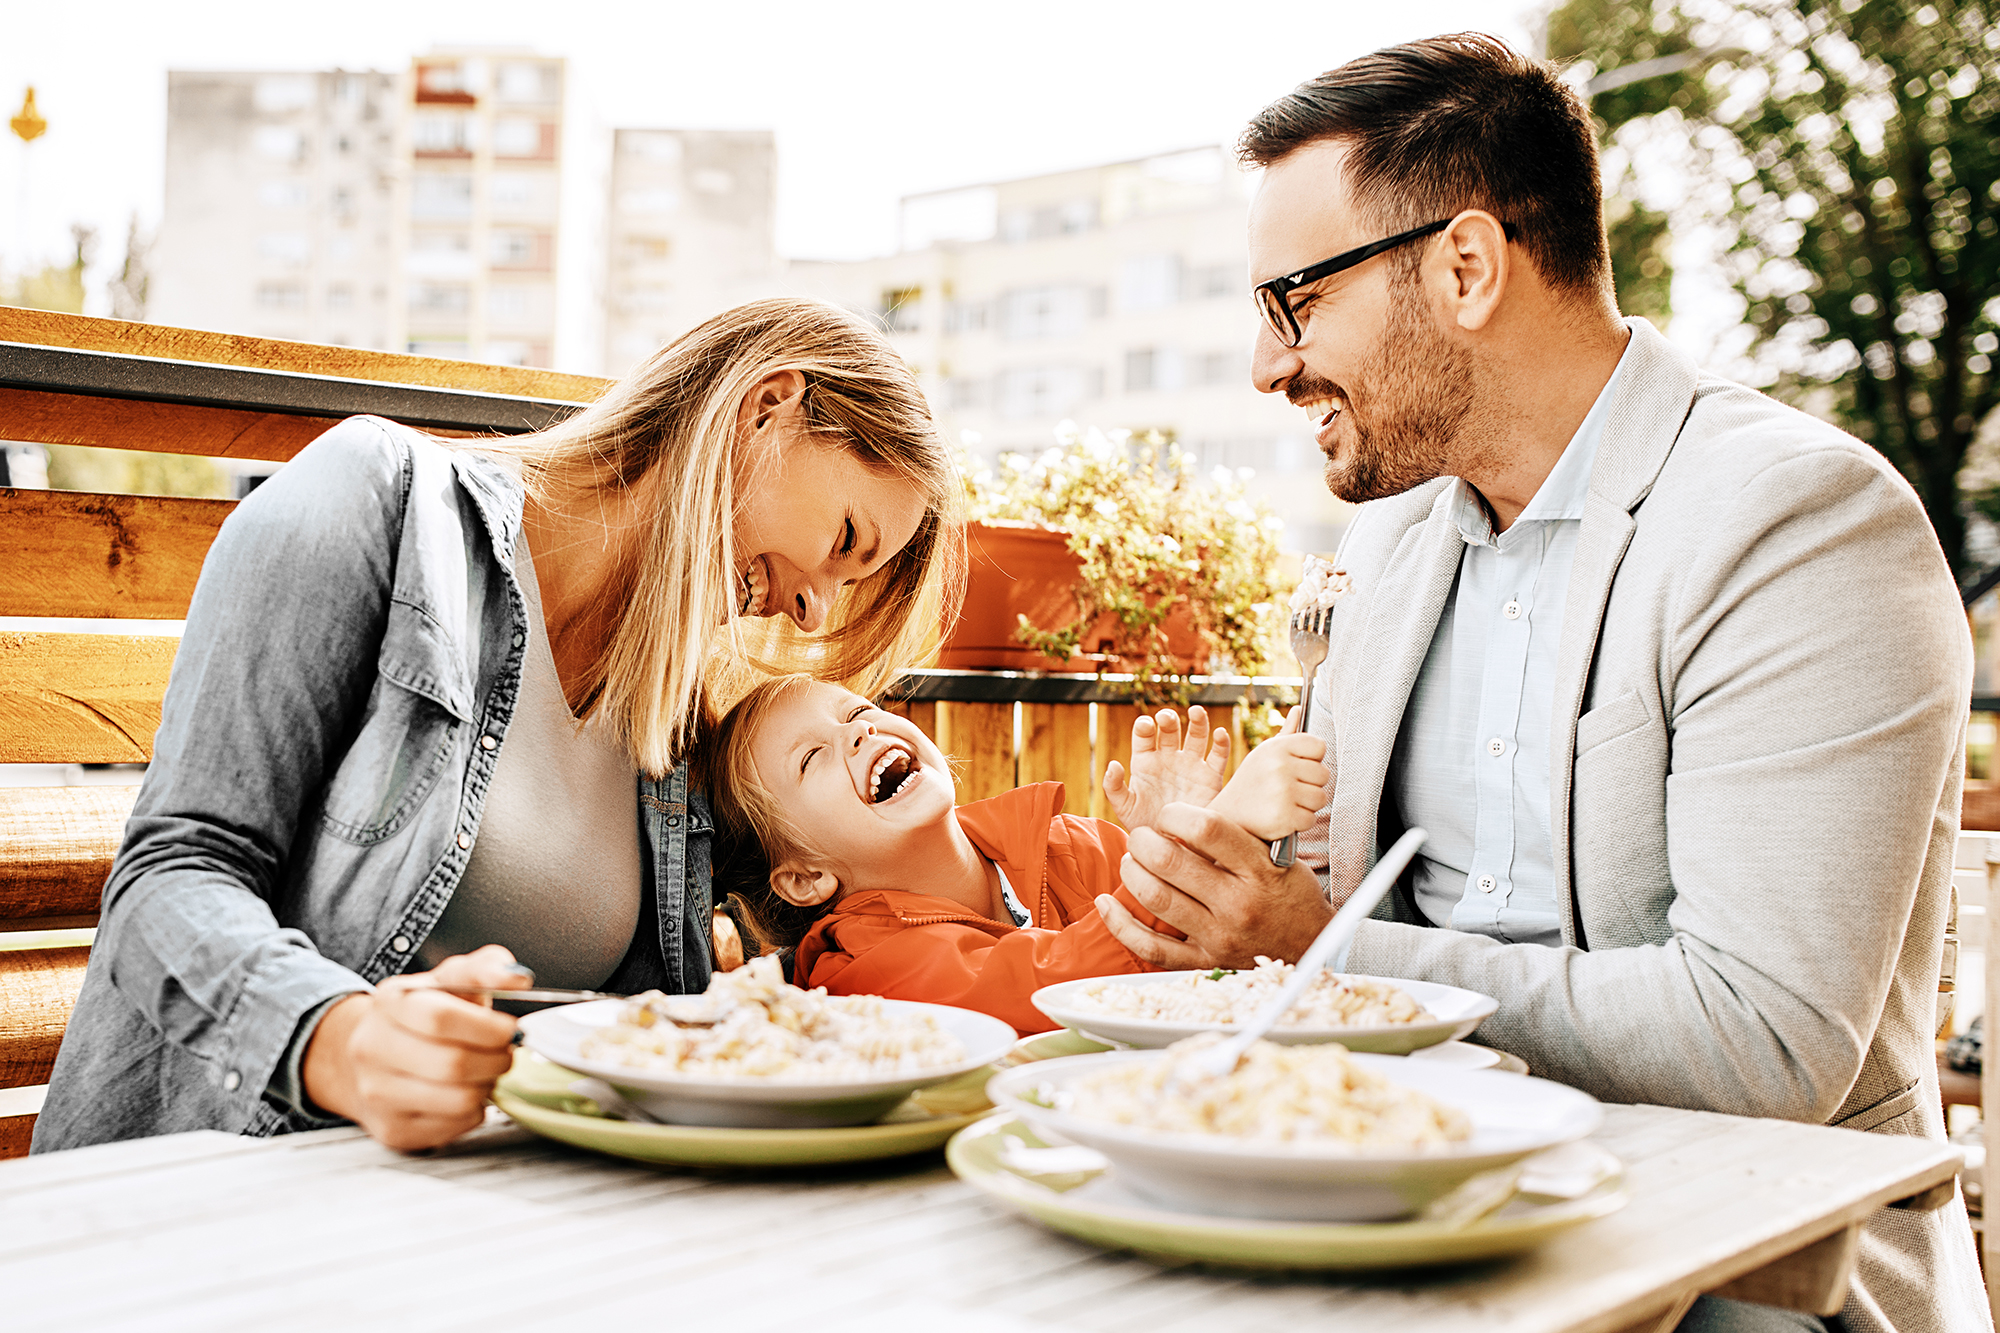 Happy family eating at a restaurant. (Image: Shutterstock)